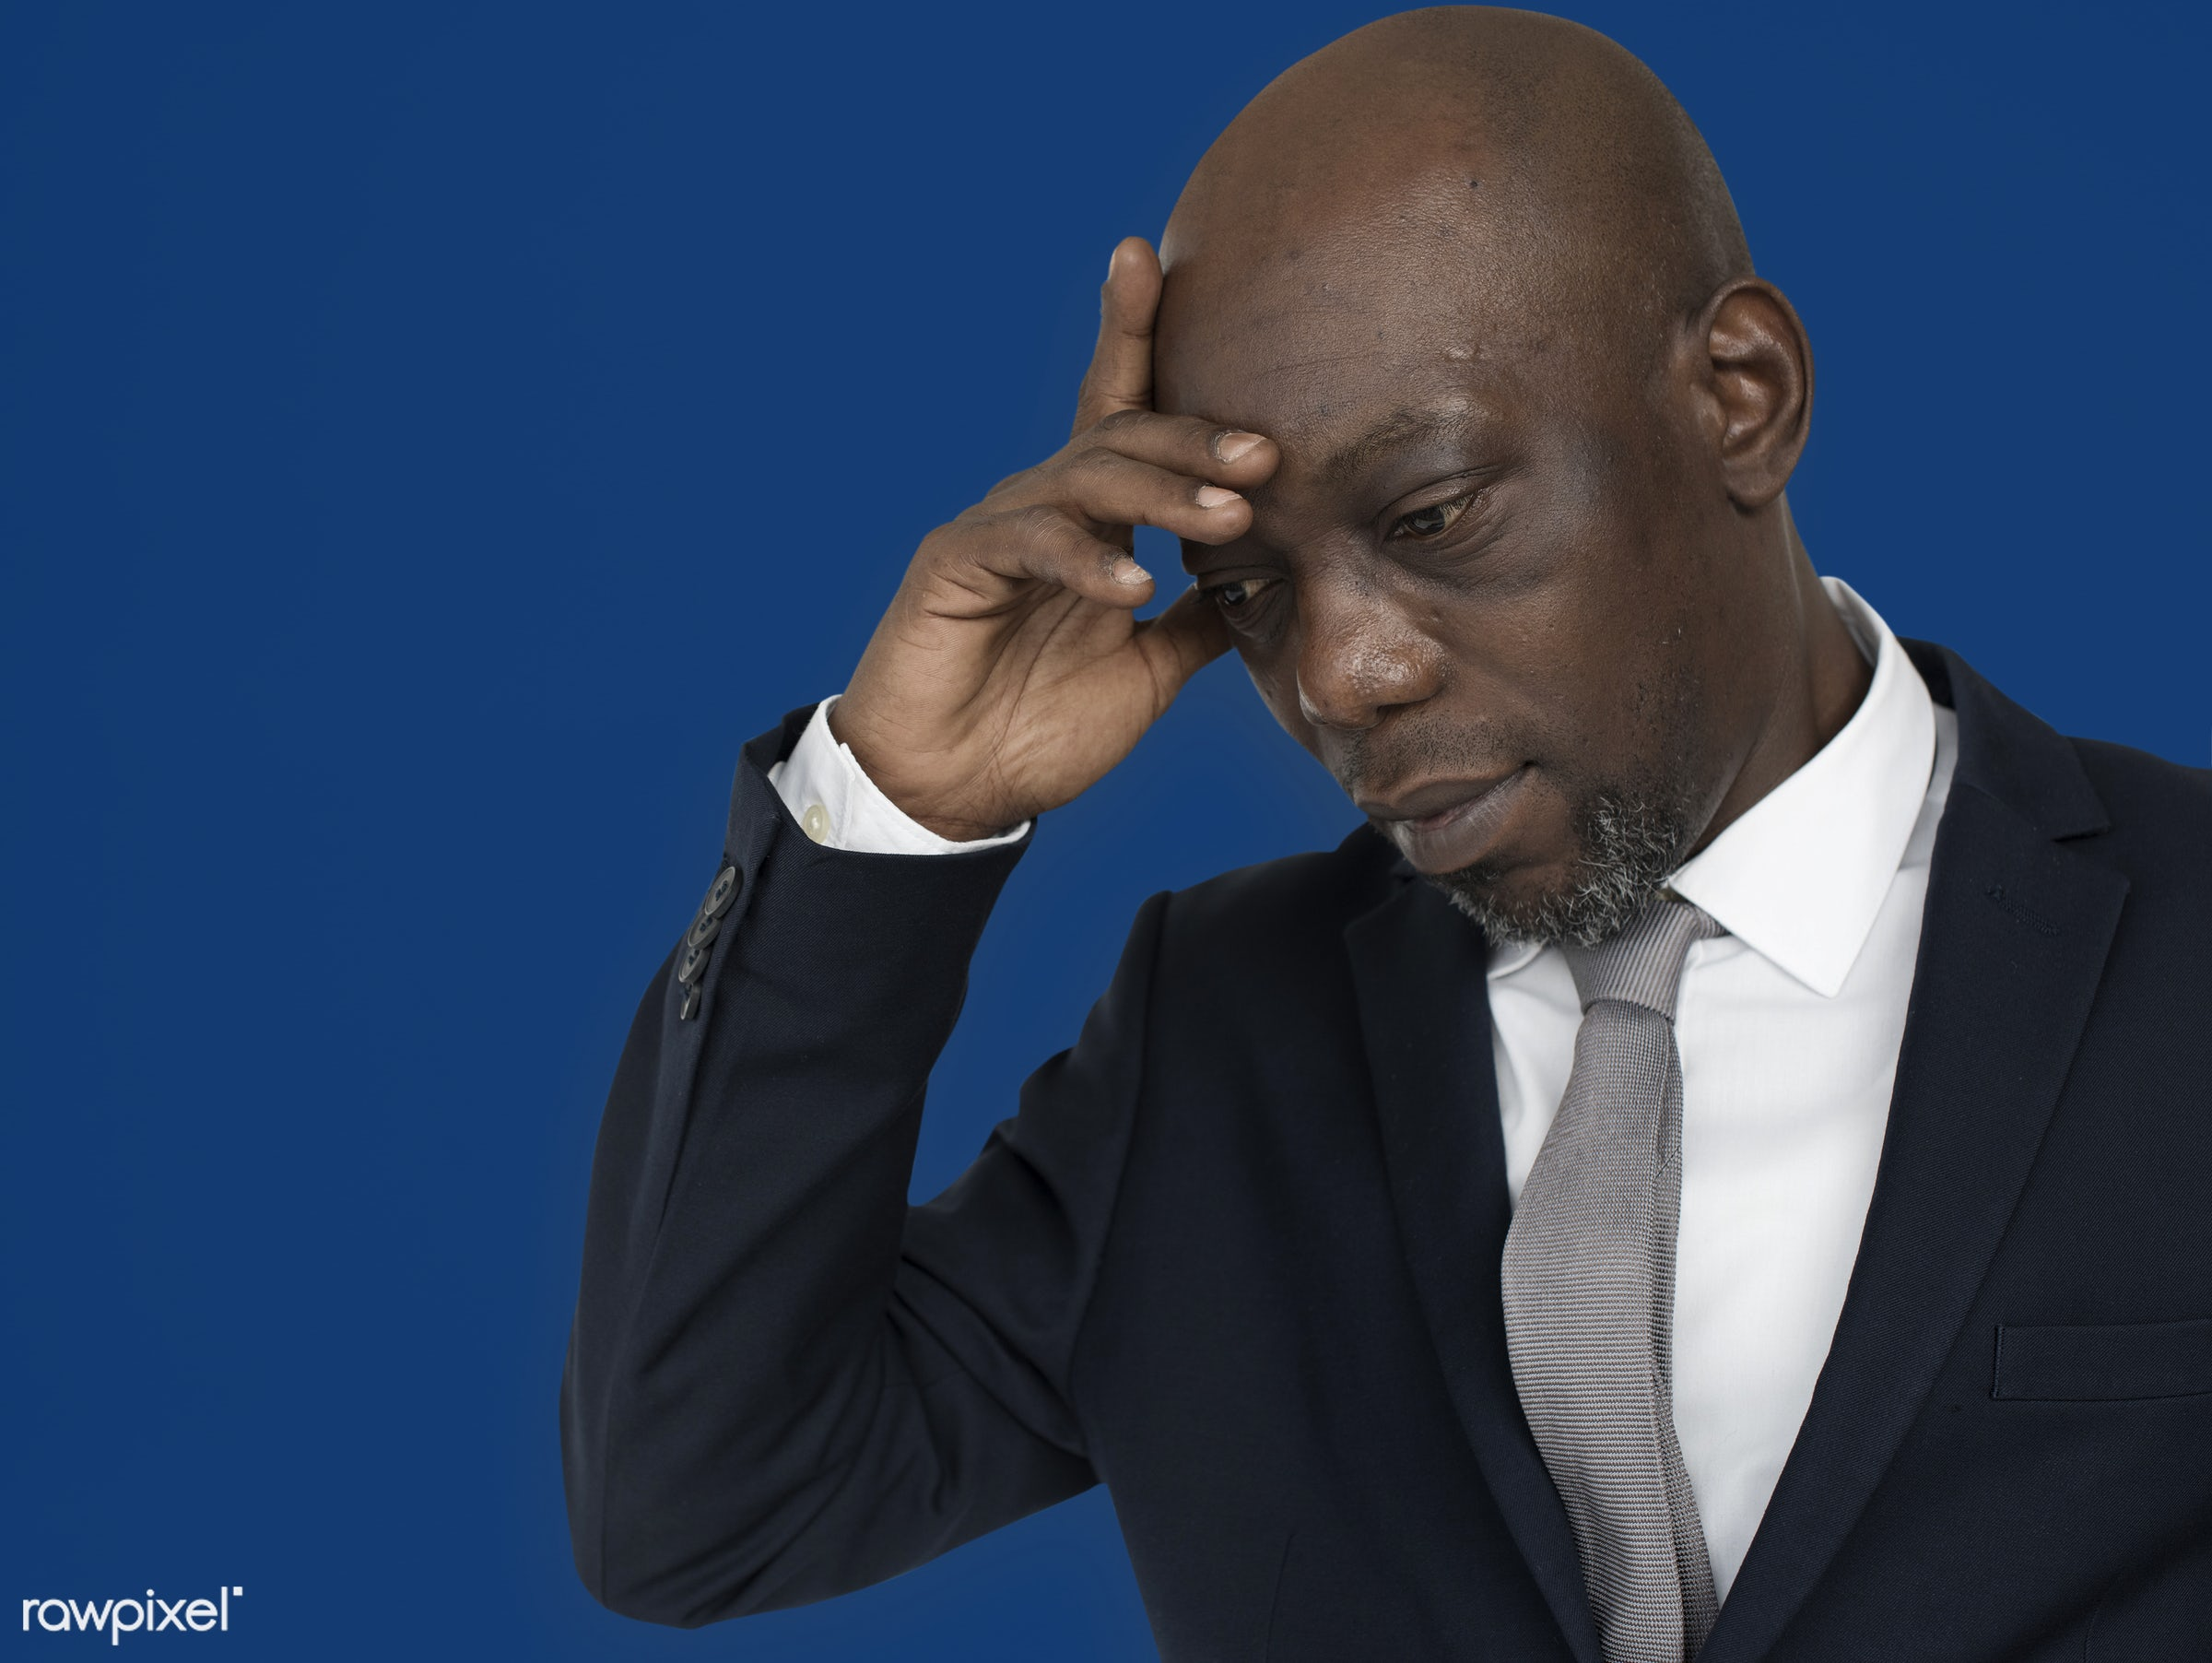 black, african, african american, man, male, professional, suit, tie, portrait, thinking, think